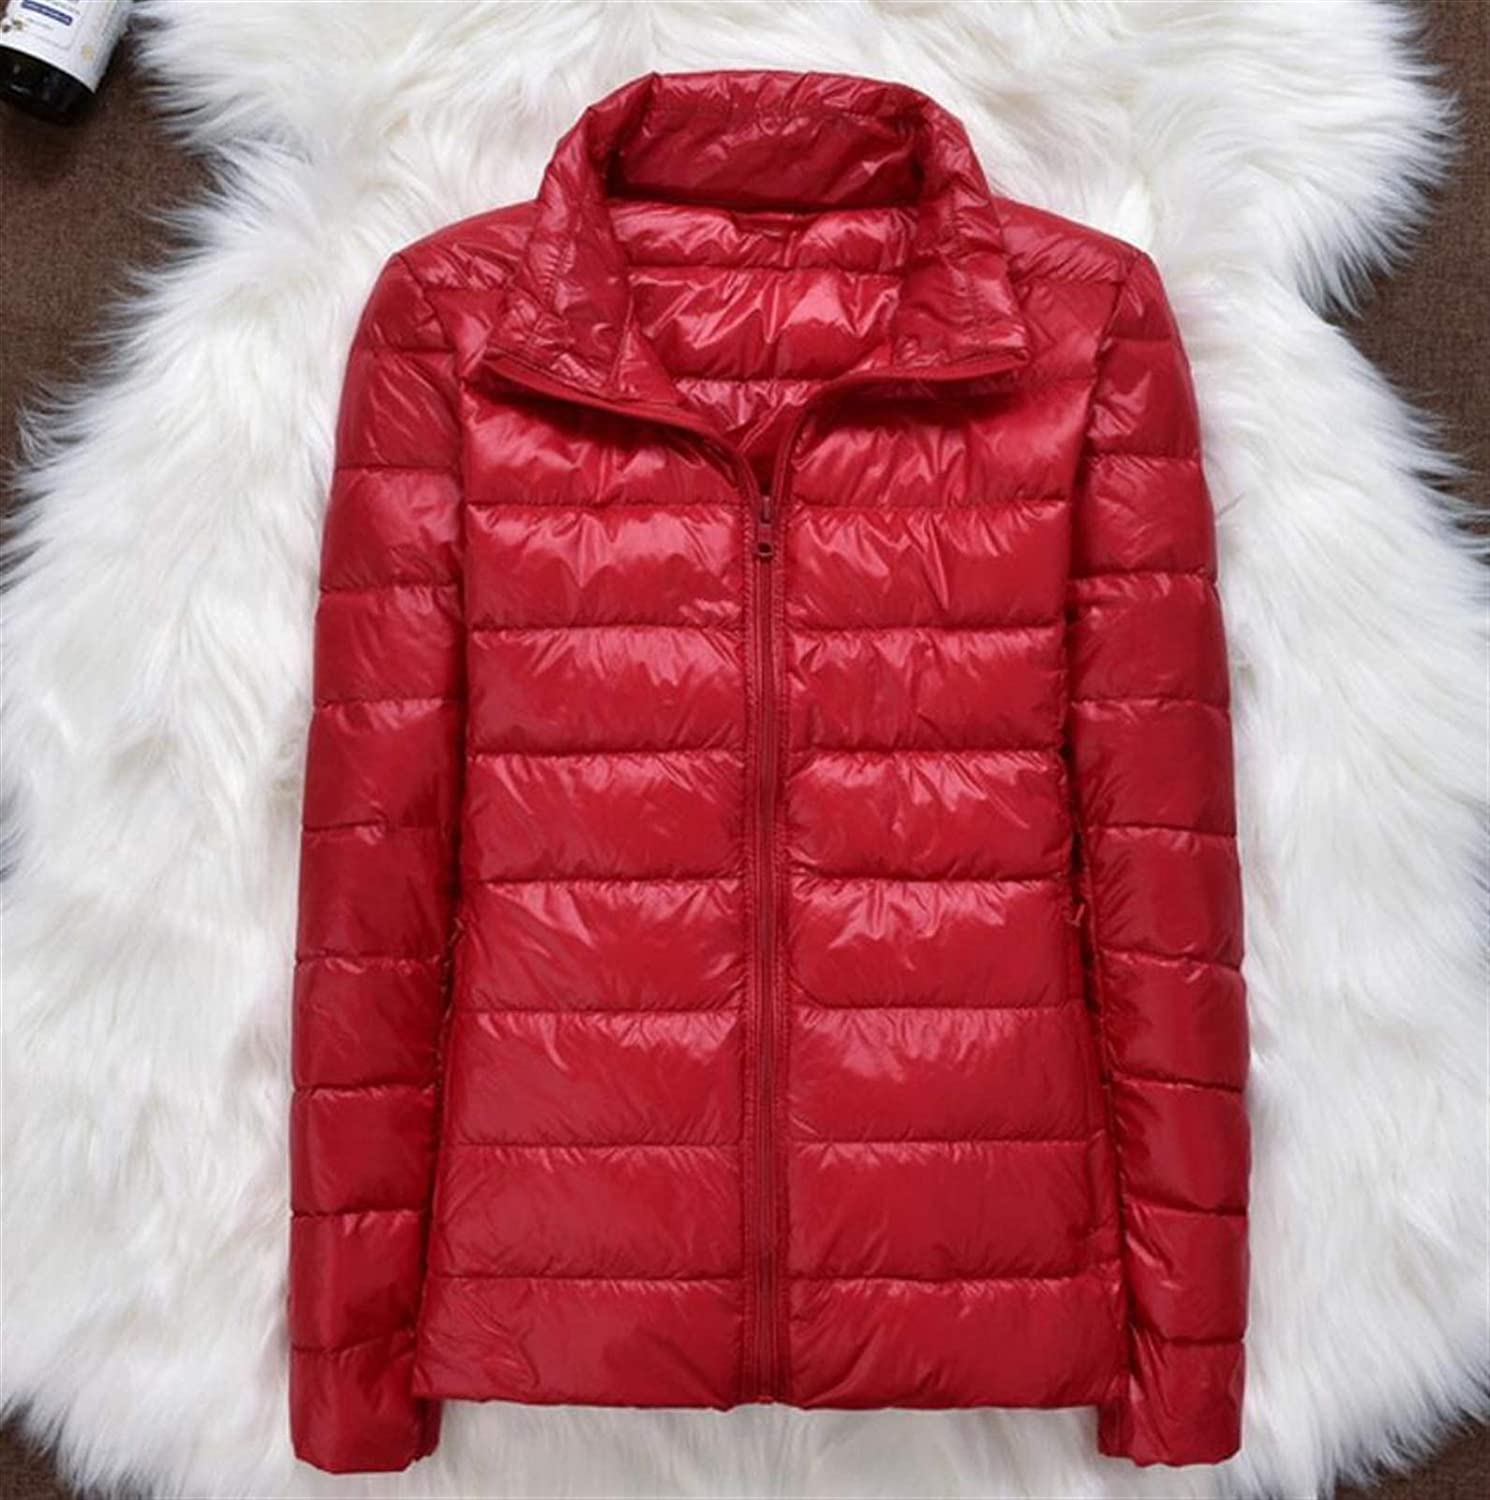 Thickened Seattle Mall Down Jacket Leather Plaid Coat New Light Winter OFFicial Ultra